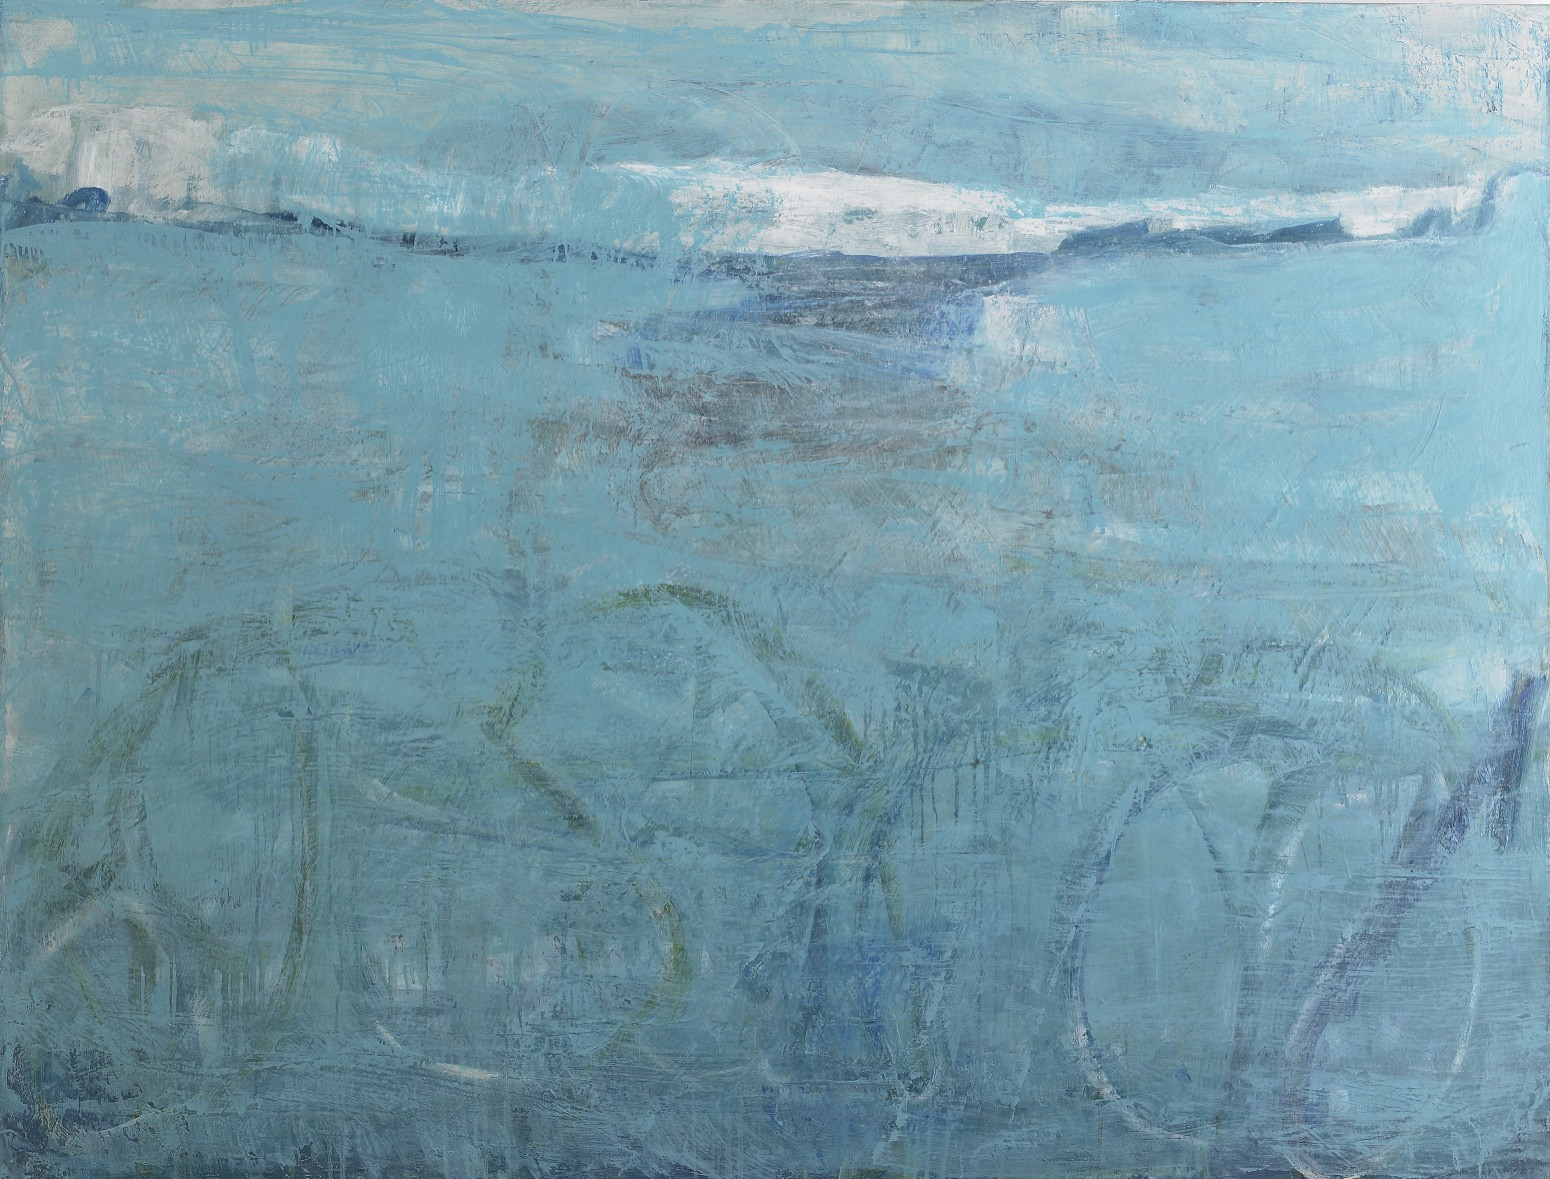 "Christel Dillbohner,  Frozen in Time , 2012-14, Oil, cold wax on linen, 55"" x 72"", Courtesy of Don Soker Contemporary Art, SF"